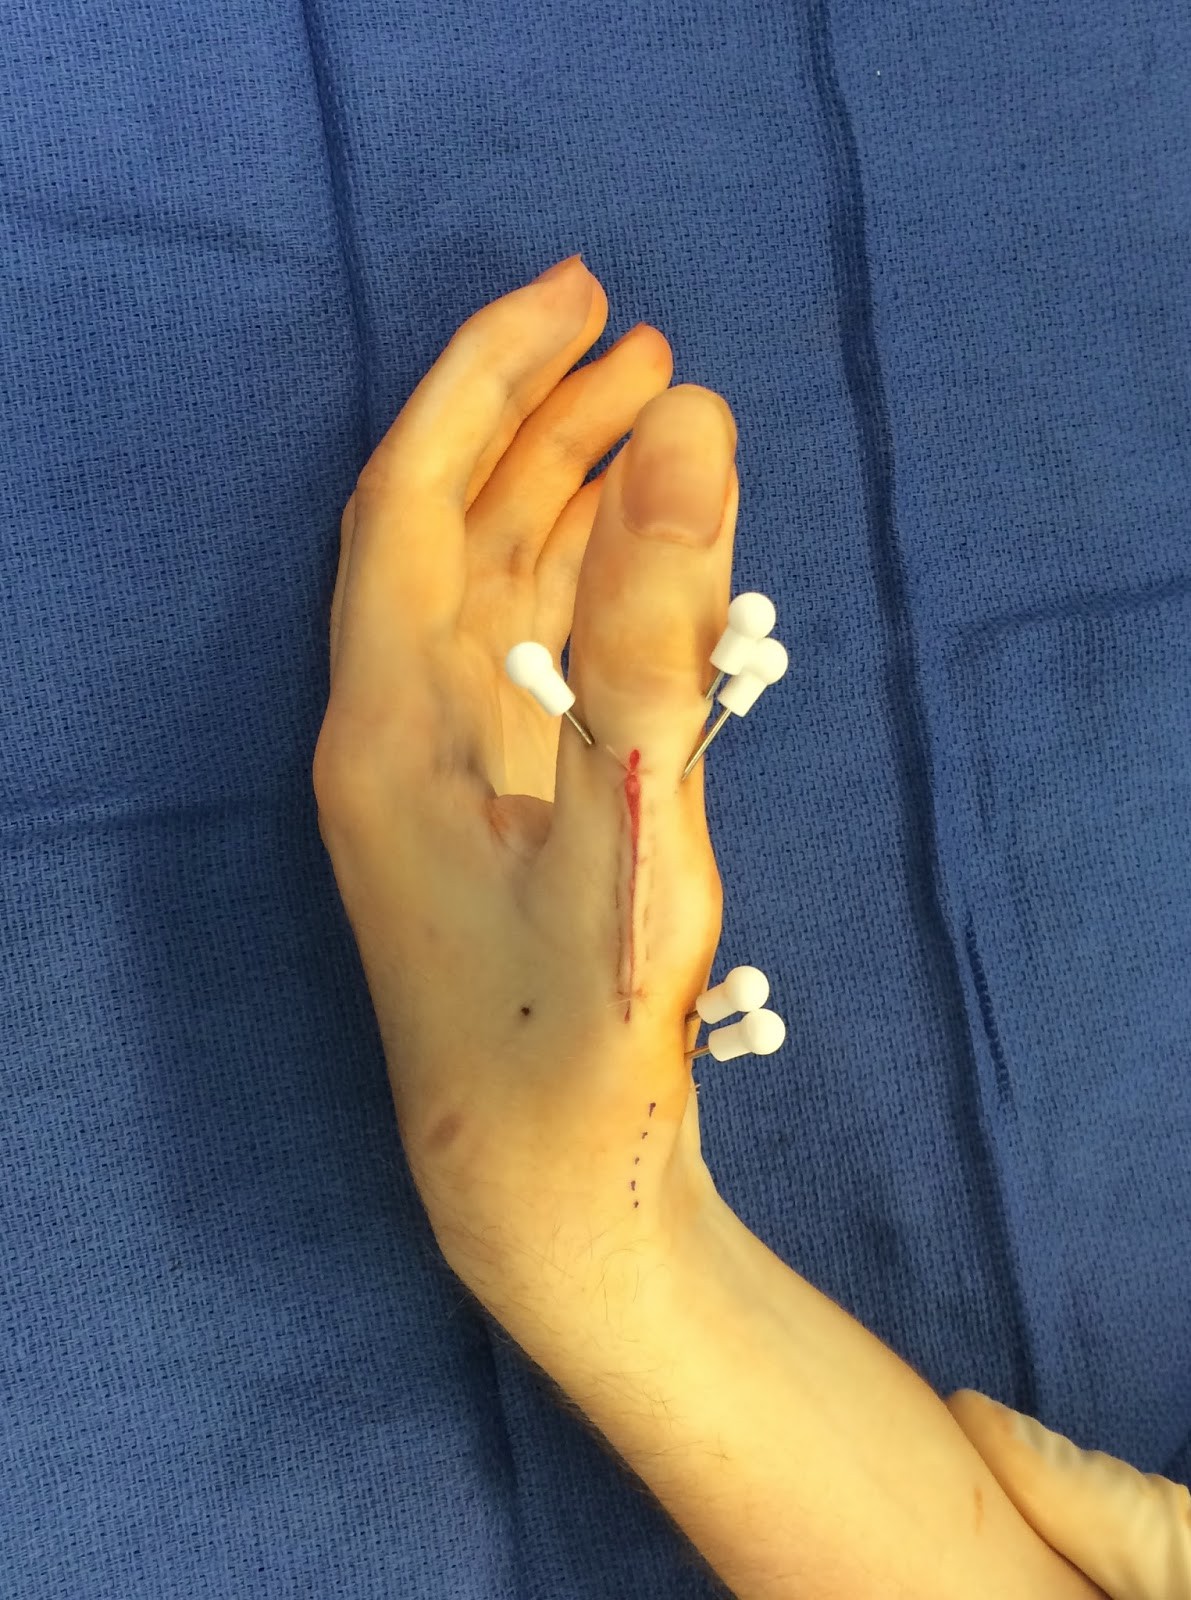 Congenital Hand And Arm Differences: Cerebral Palsy, Thumb Deformity